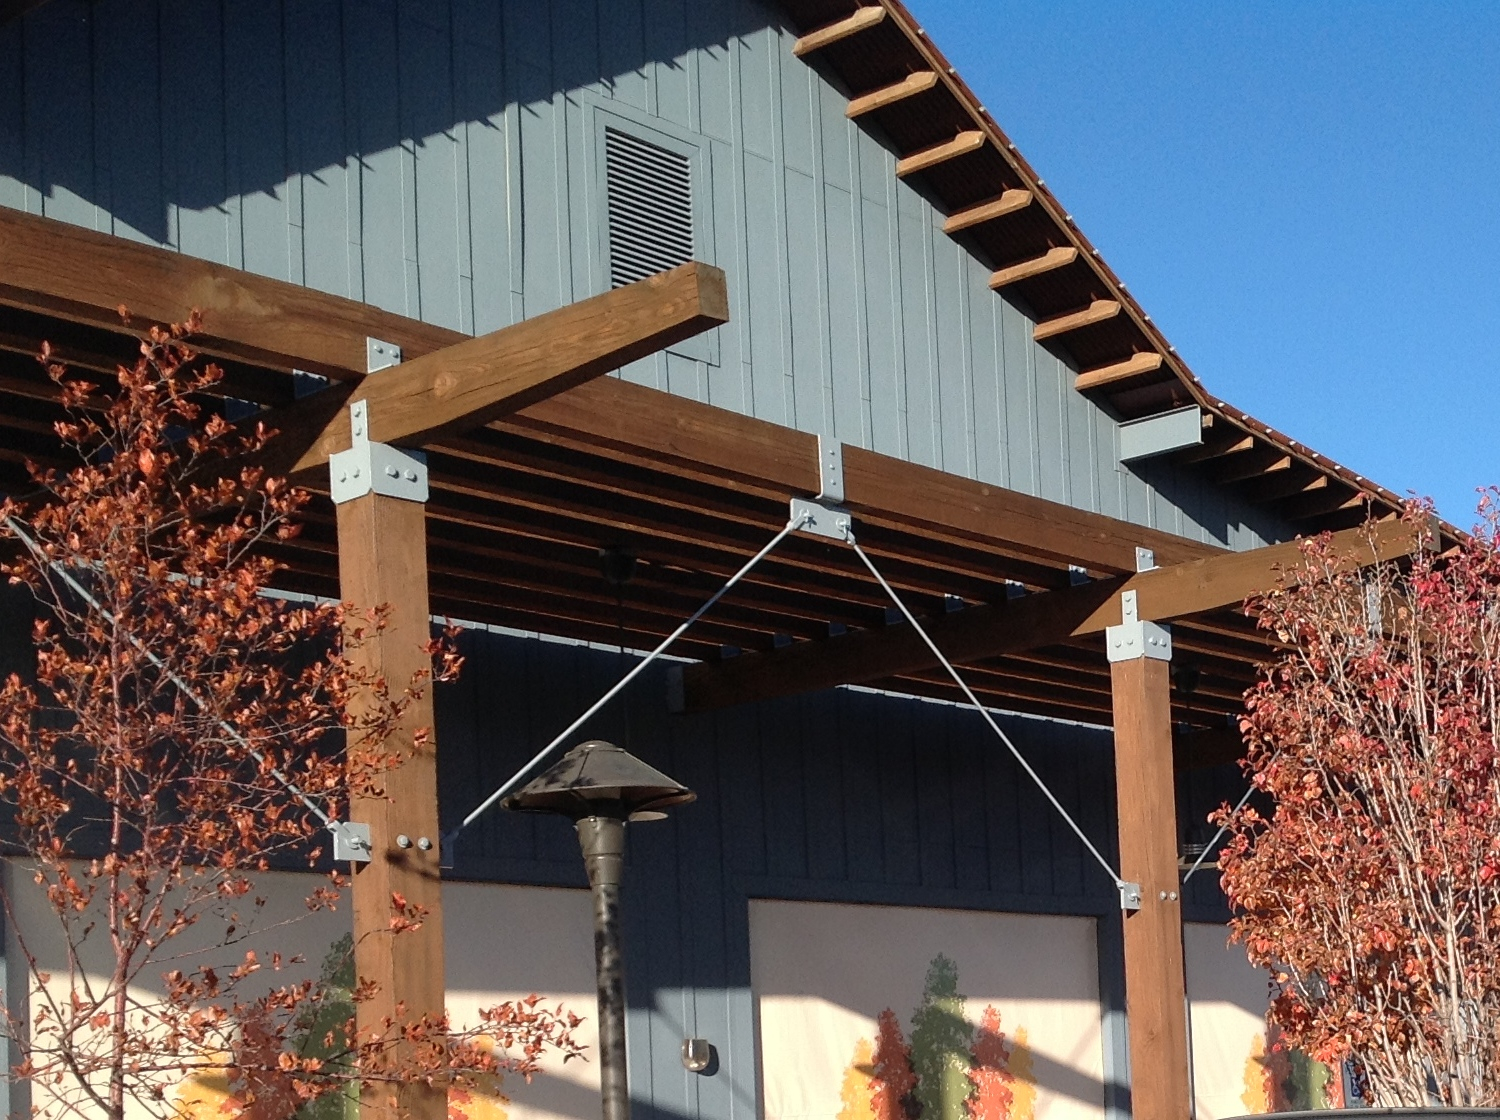 Wood re-staining and detailed bolt/bracket painting with an exterior rust inhibiting product